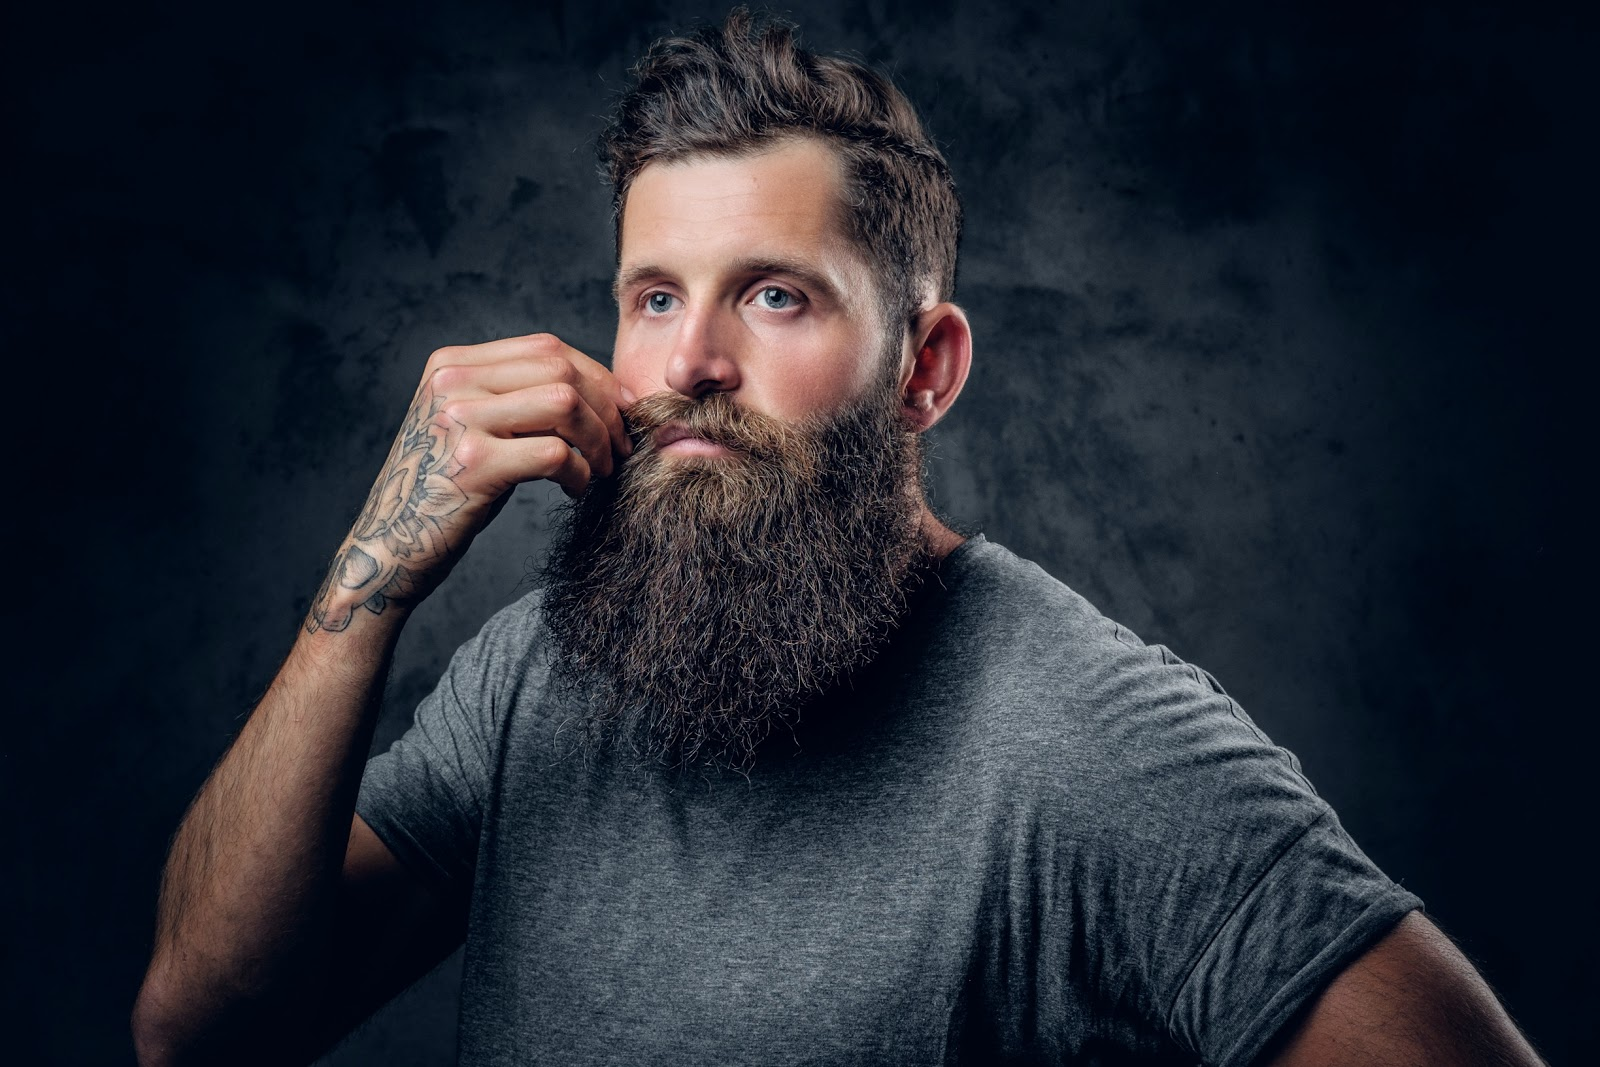 Beard Care Products You Need in Your Routine